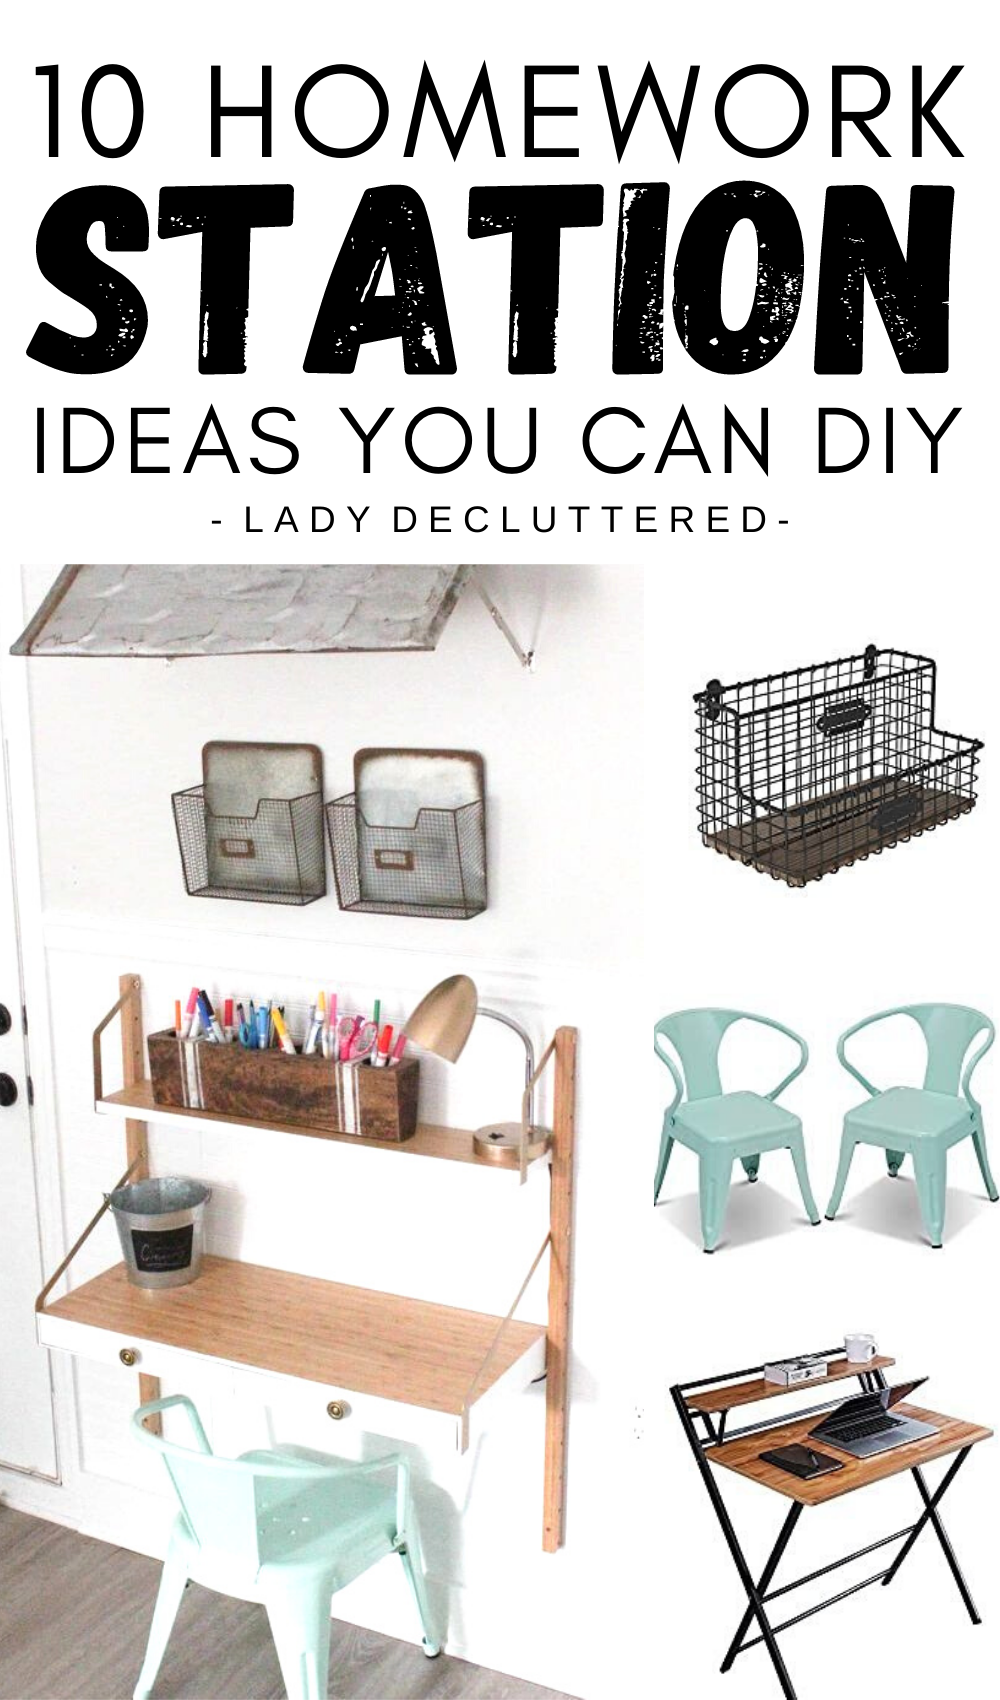 10 Diy Homework Stations For Small Spaces Lady Decluttered Homework Station Diy Desk Organization Diy Diy Office Organization